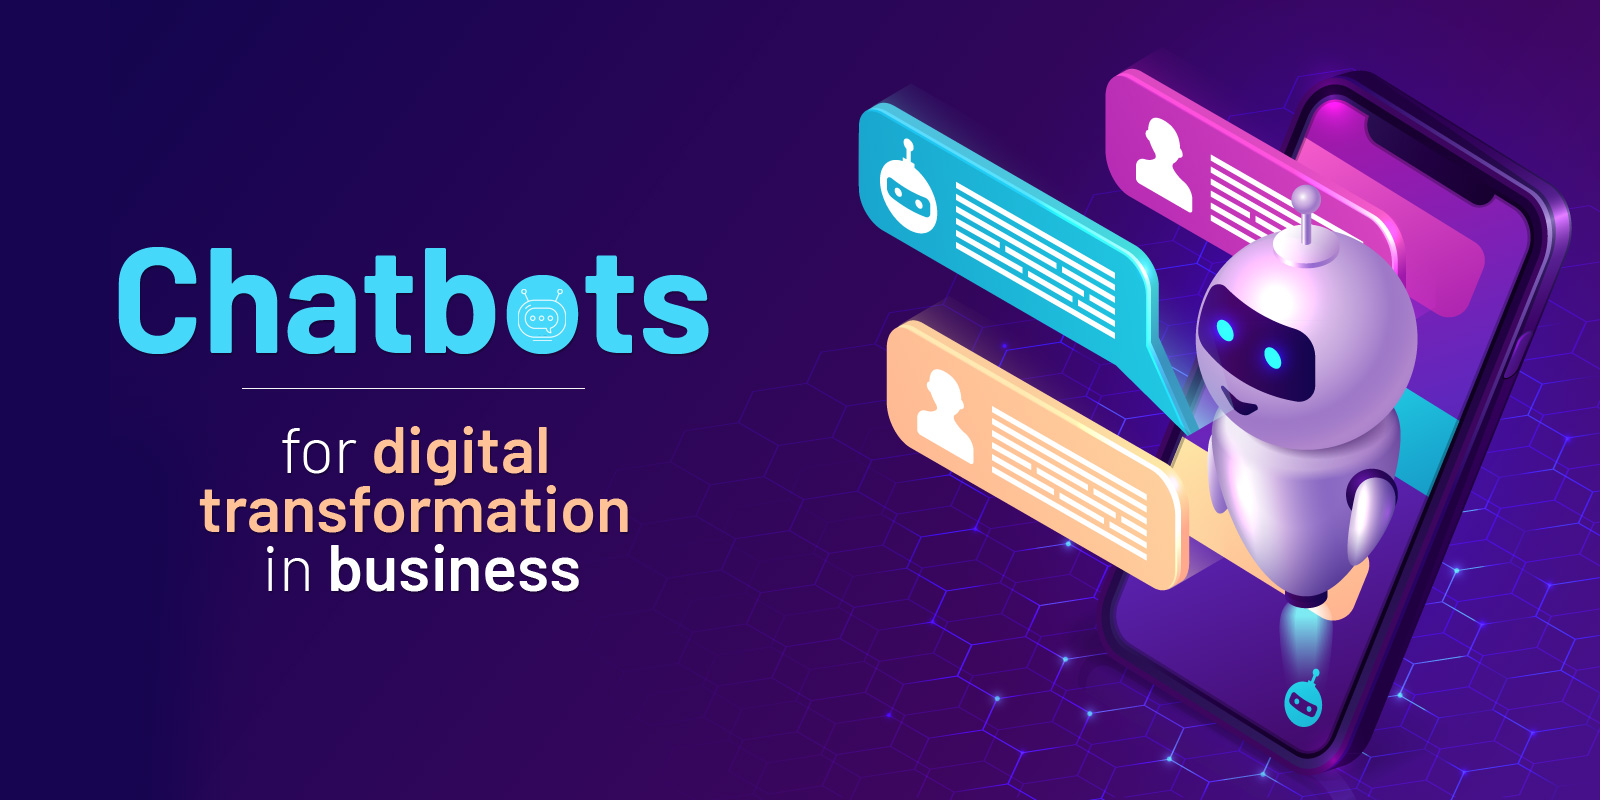 5 reasons why your business needs Chatbots